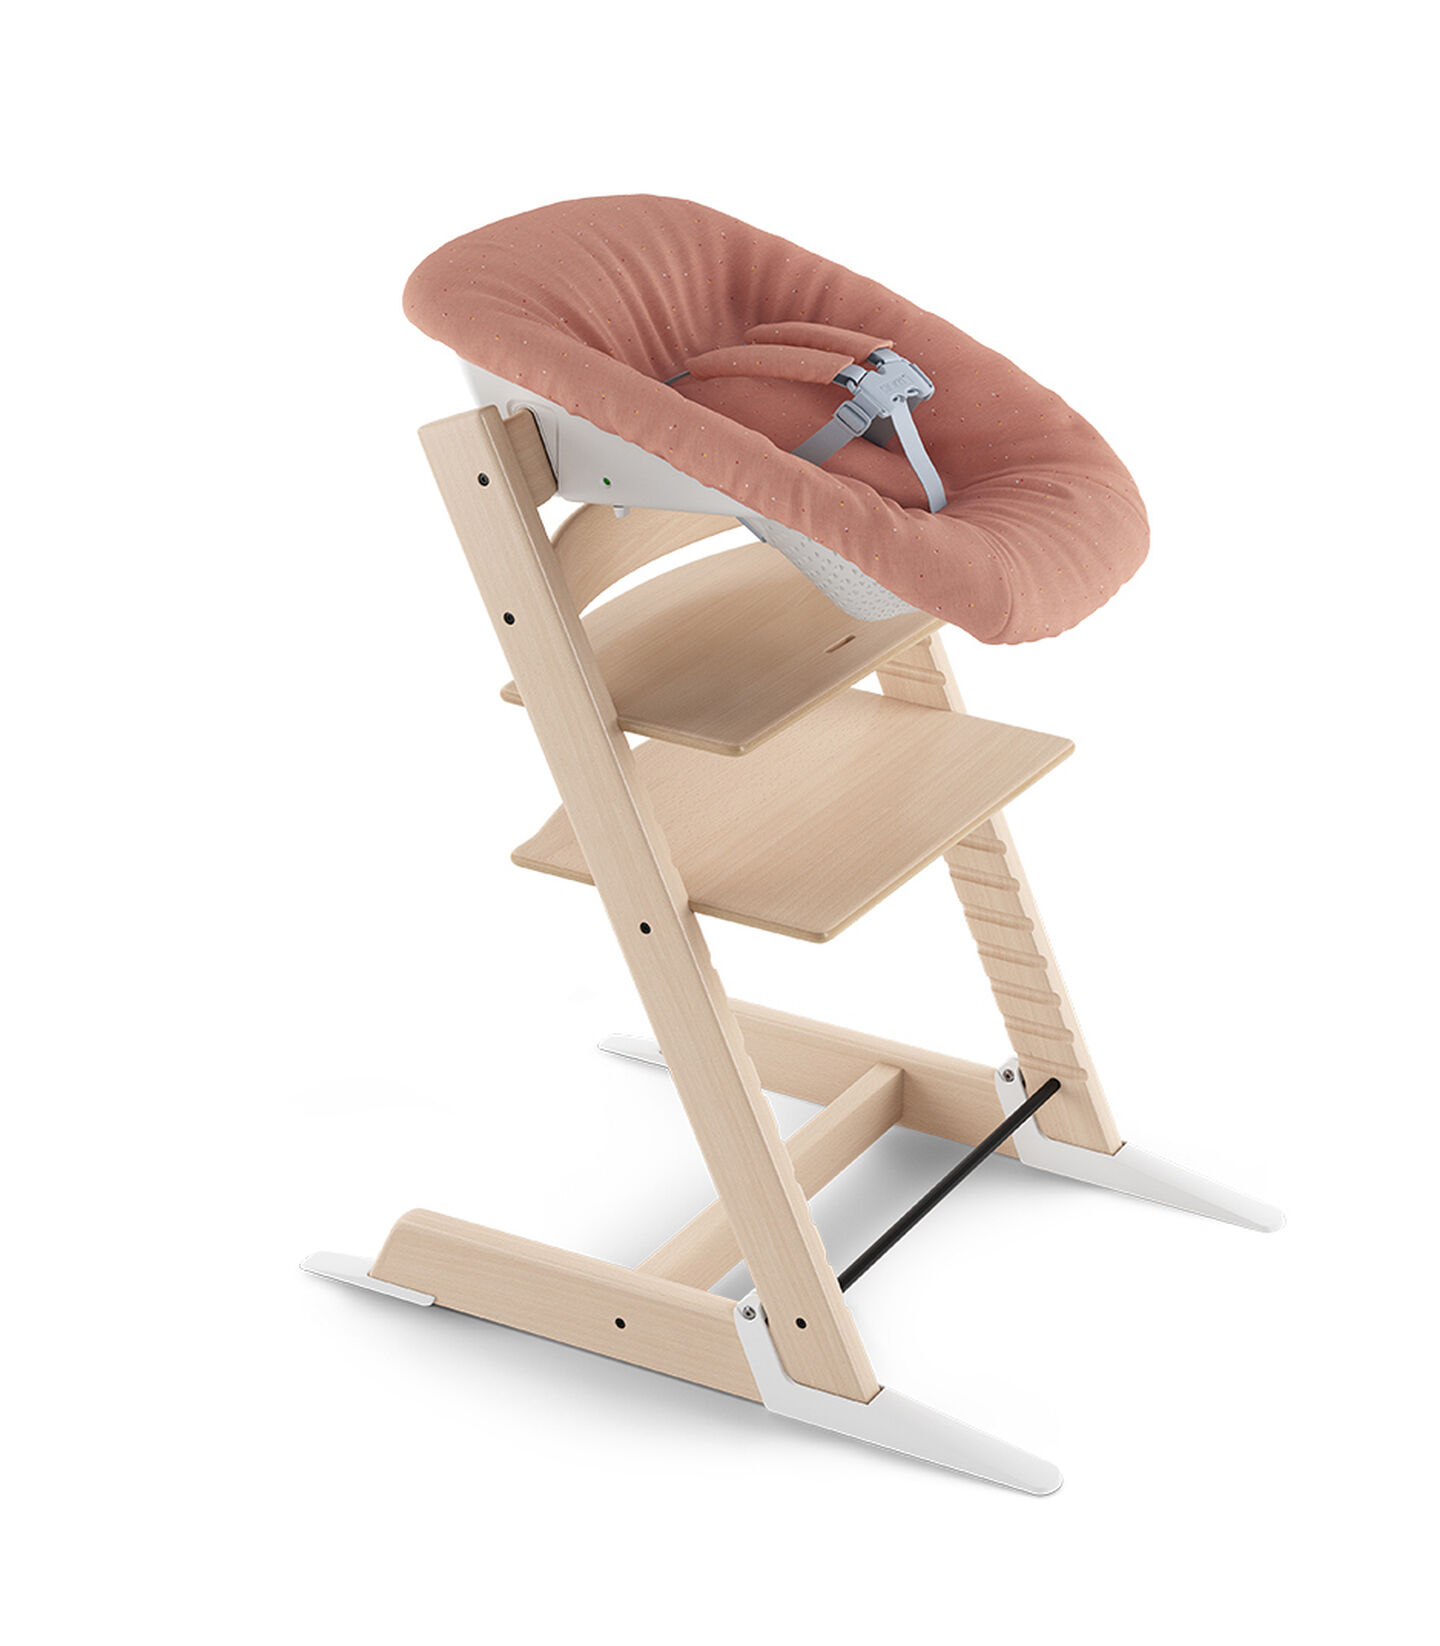 Tripp Trapp® Natural and Tripp Trapp® Newborn Set with Coral Confetti  textiles. Active position. US version.